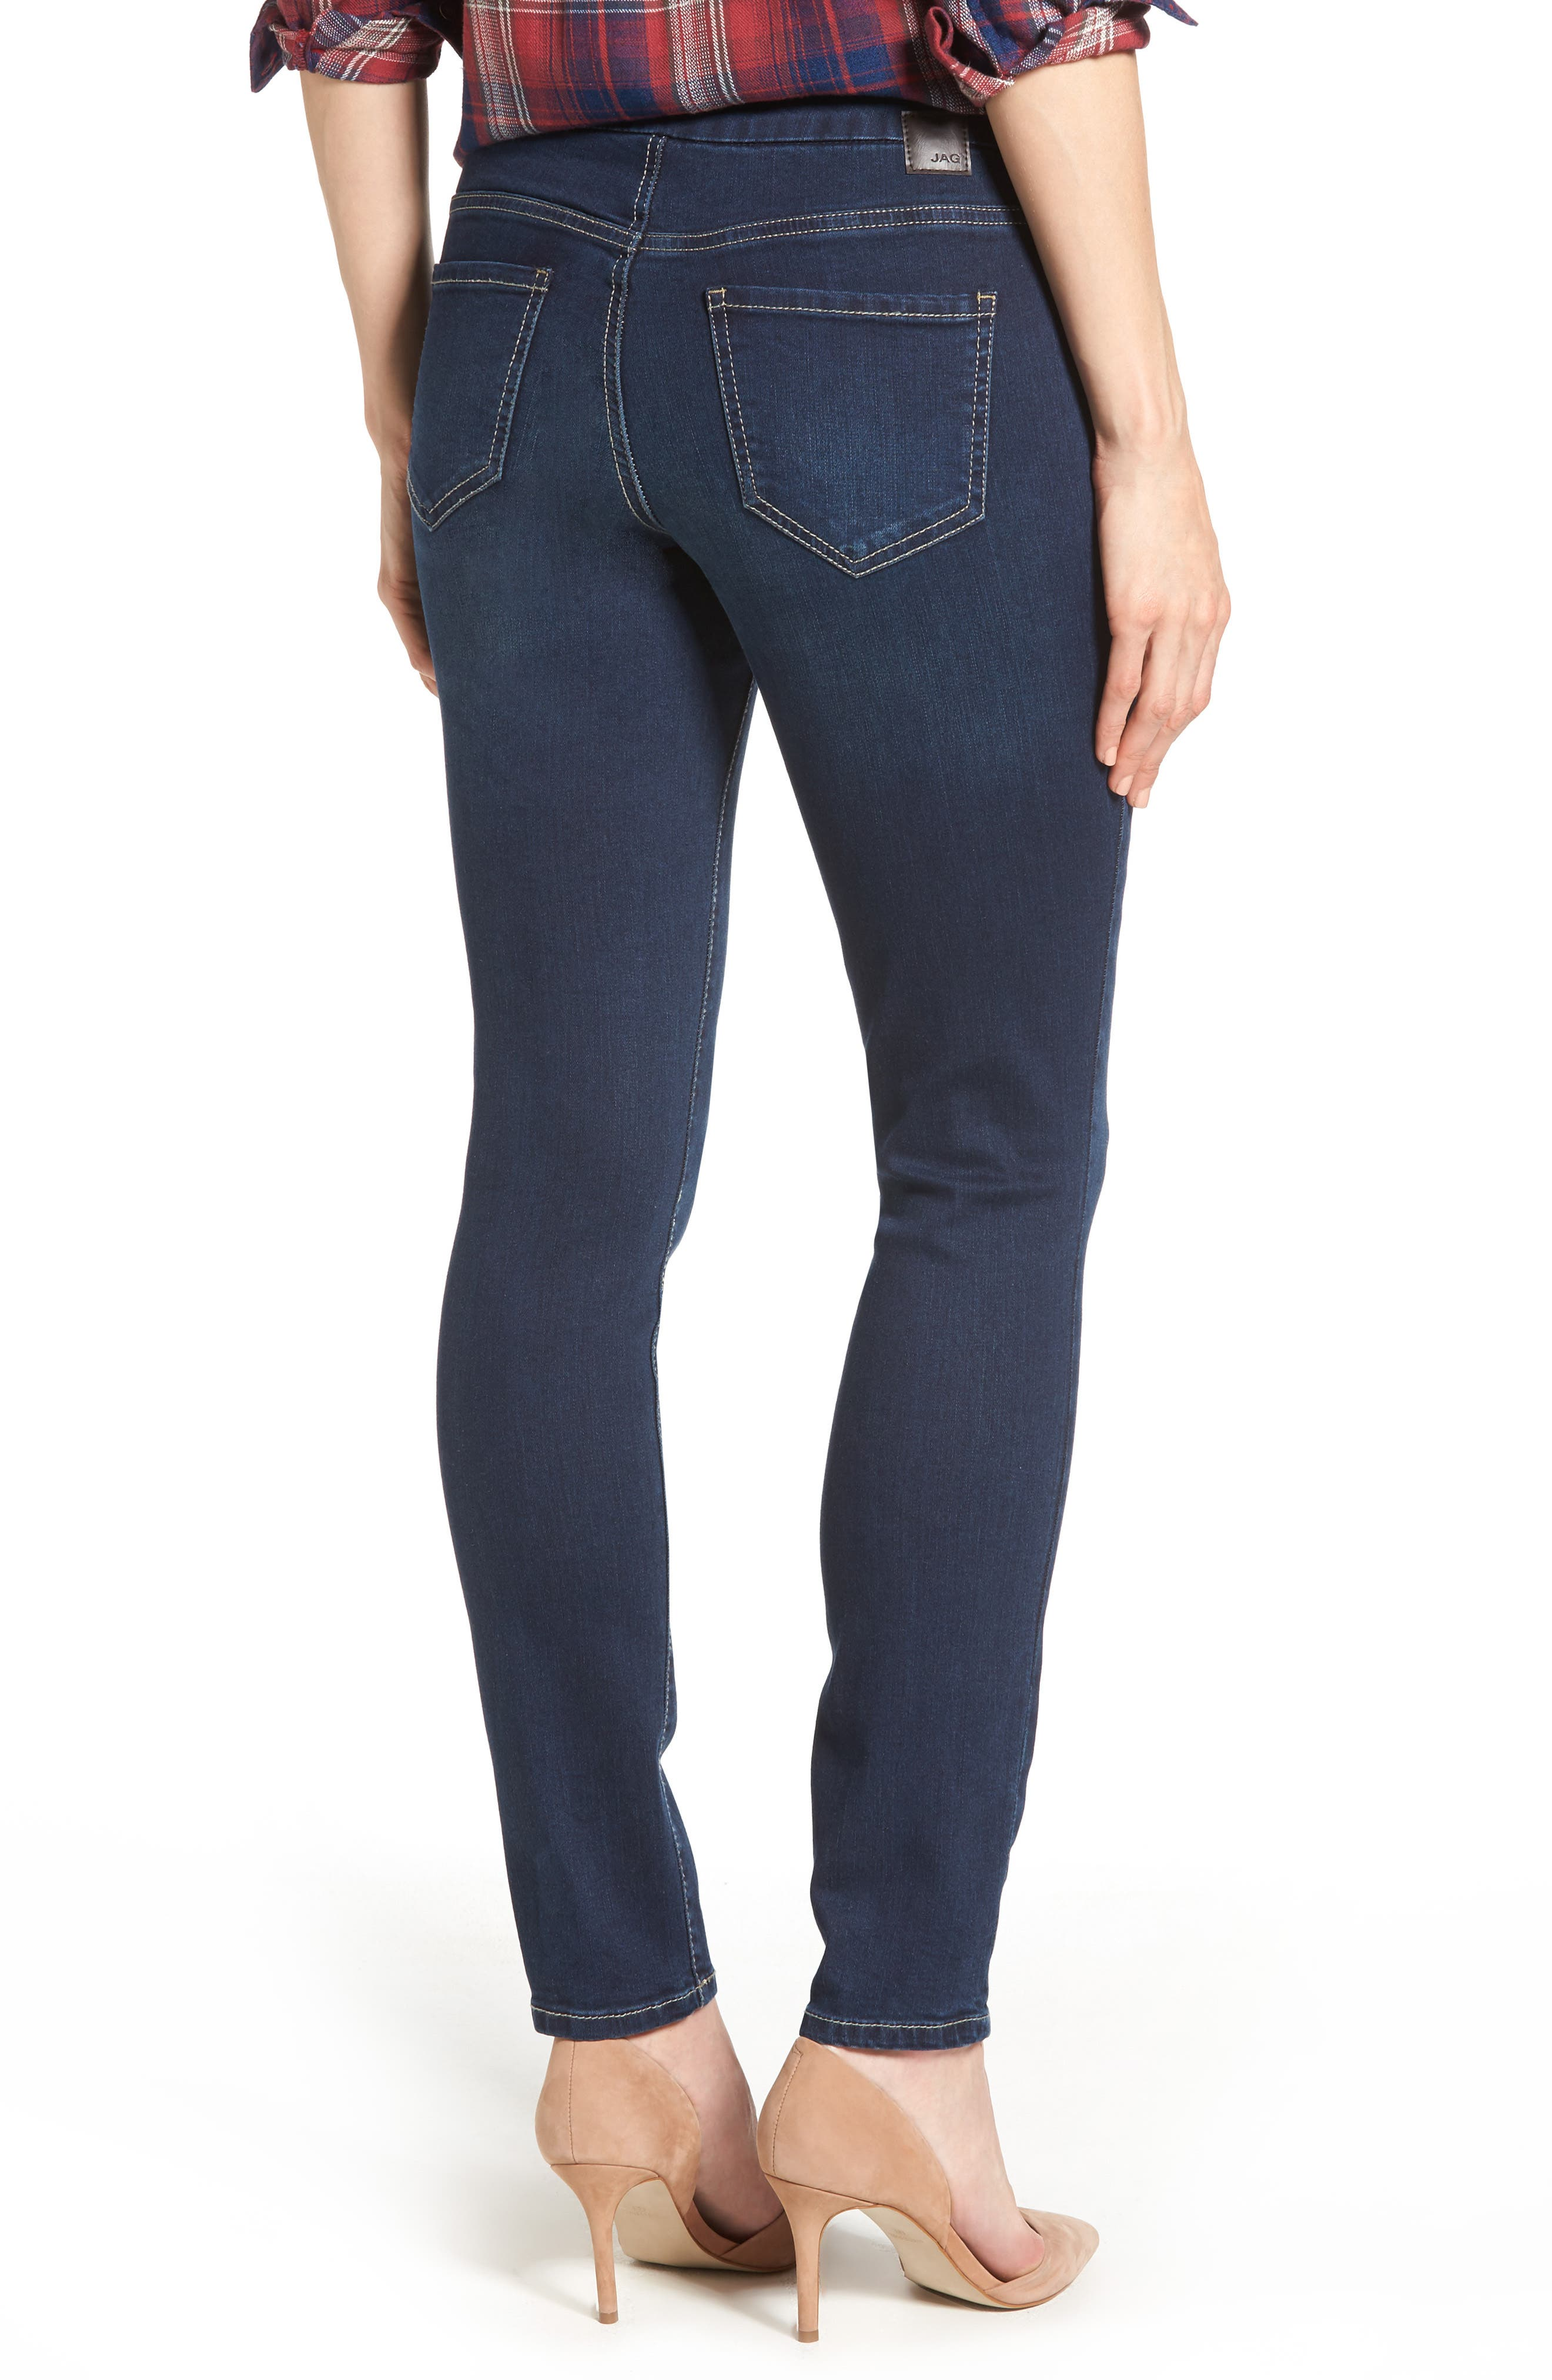 Nora Stretch Skinny Jeans,                             Alternate thumbnail 2, color,                             DARK INDIGO